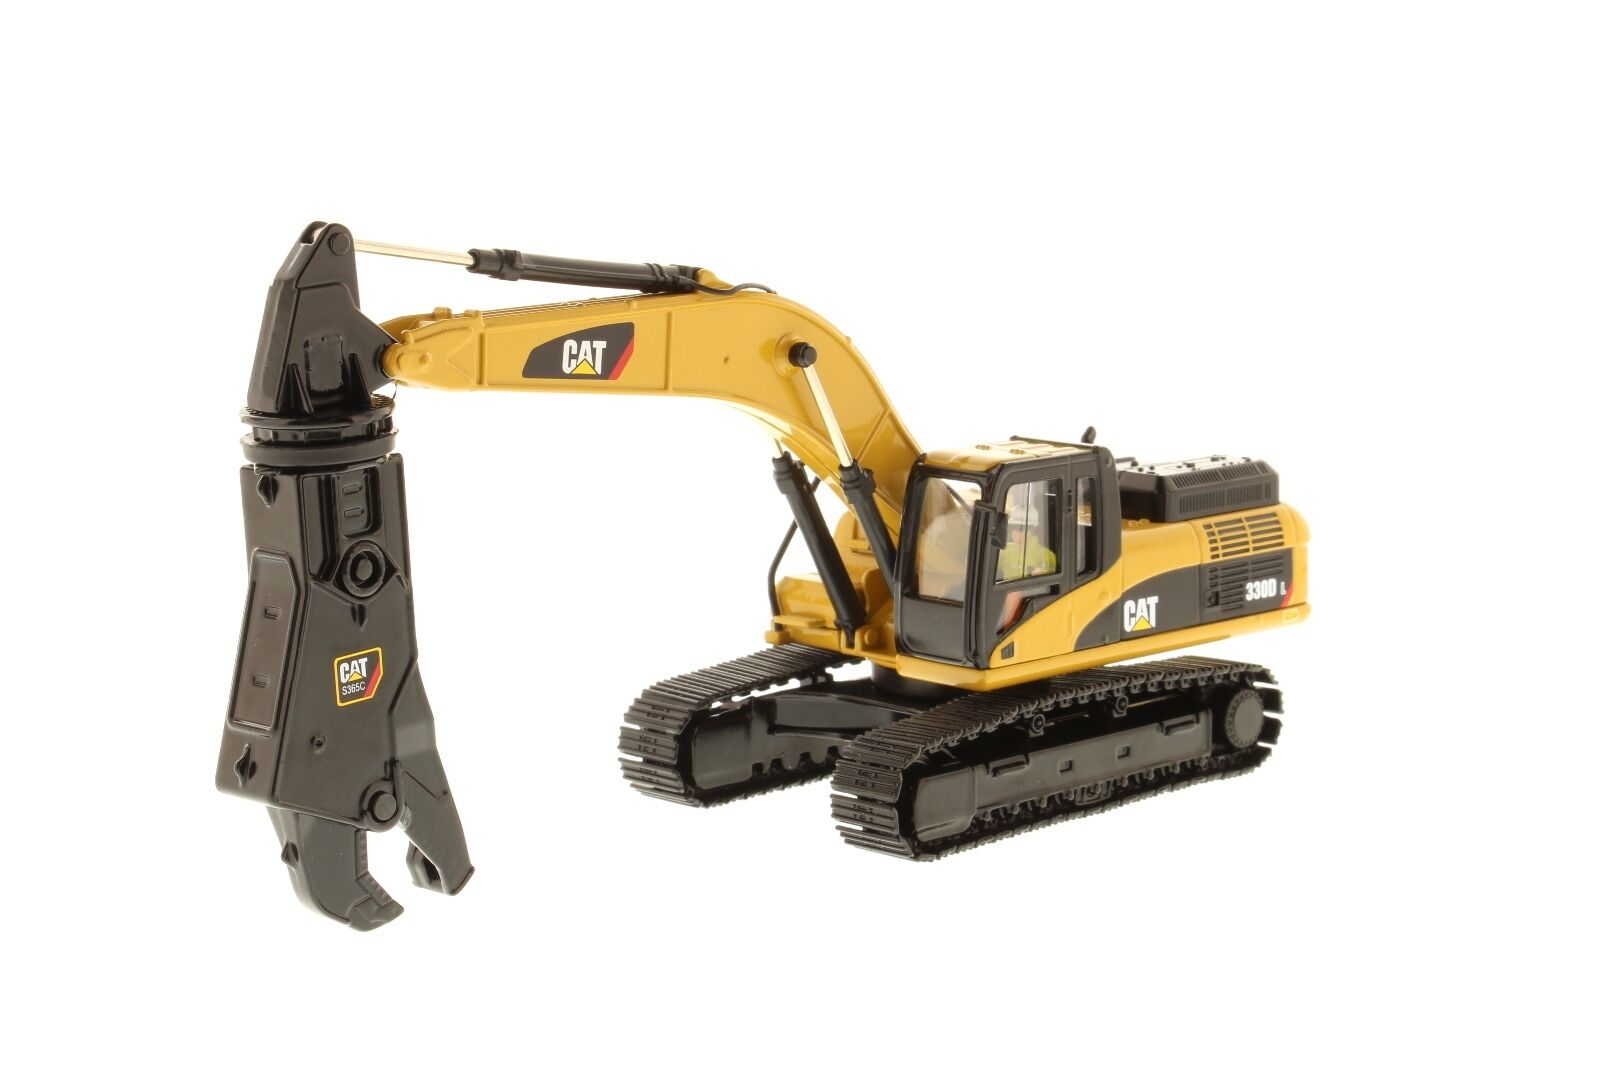 Caterpillar 1:50 scale Cat® 330D L Hydraulic Excavator with Shear 85277